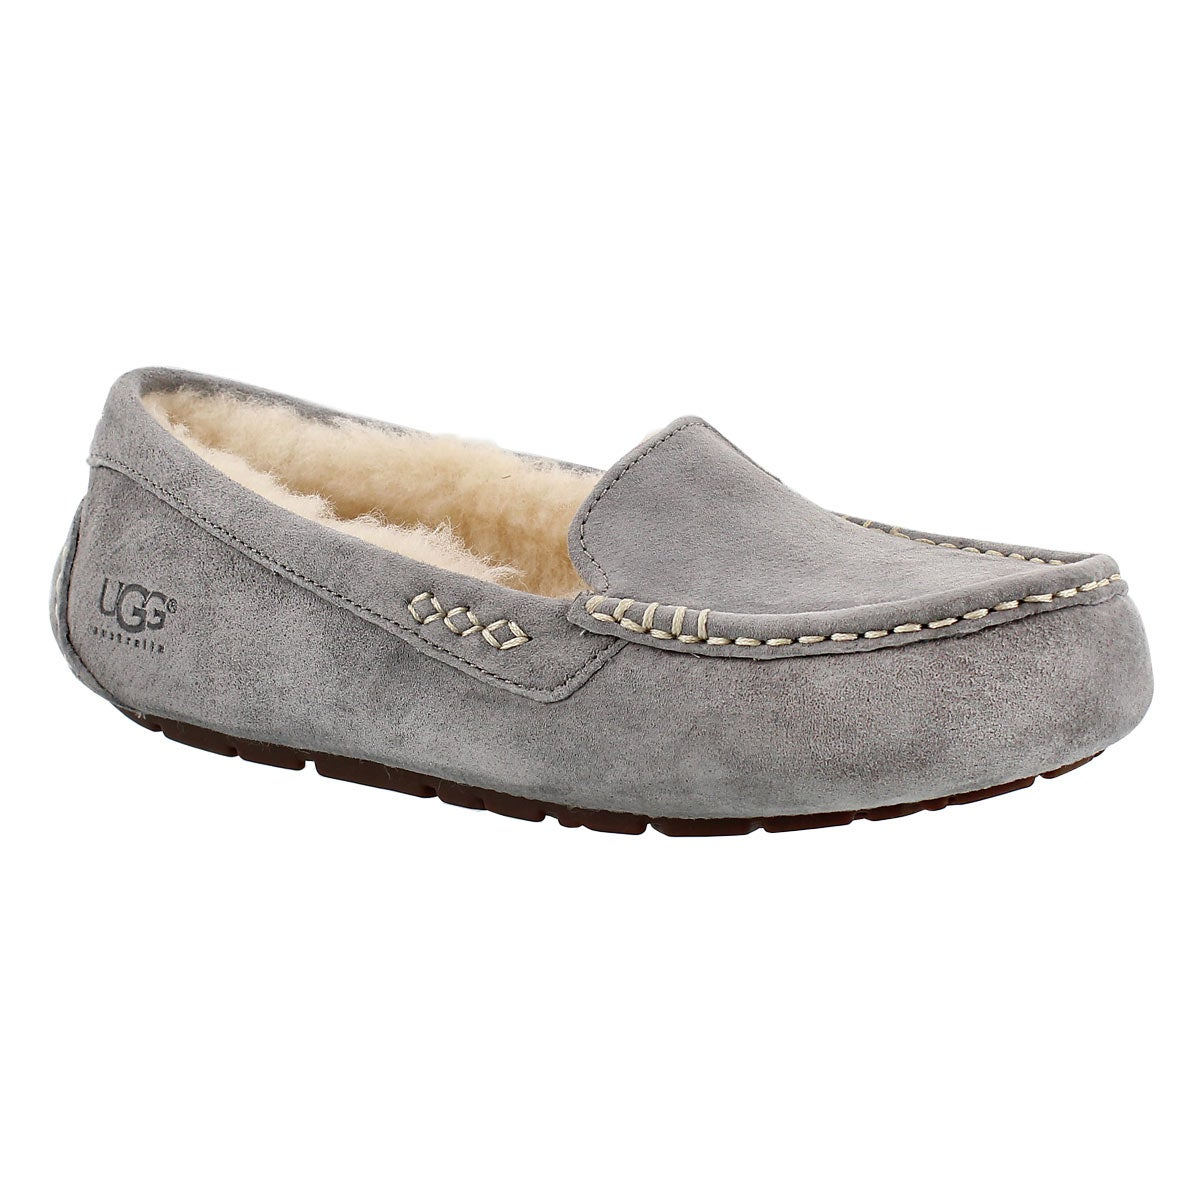 Women's ANSLEY grey sheepskin moccasins